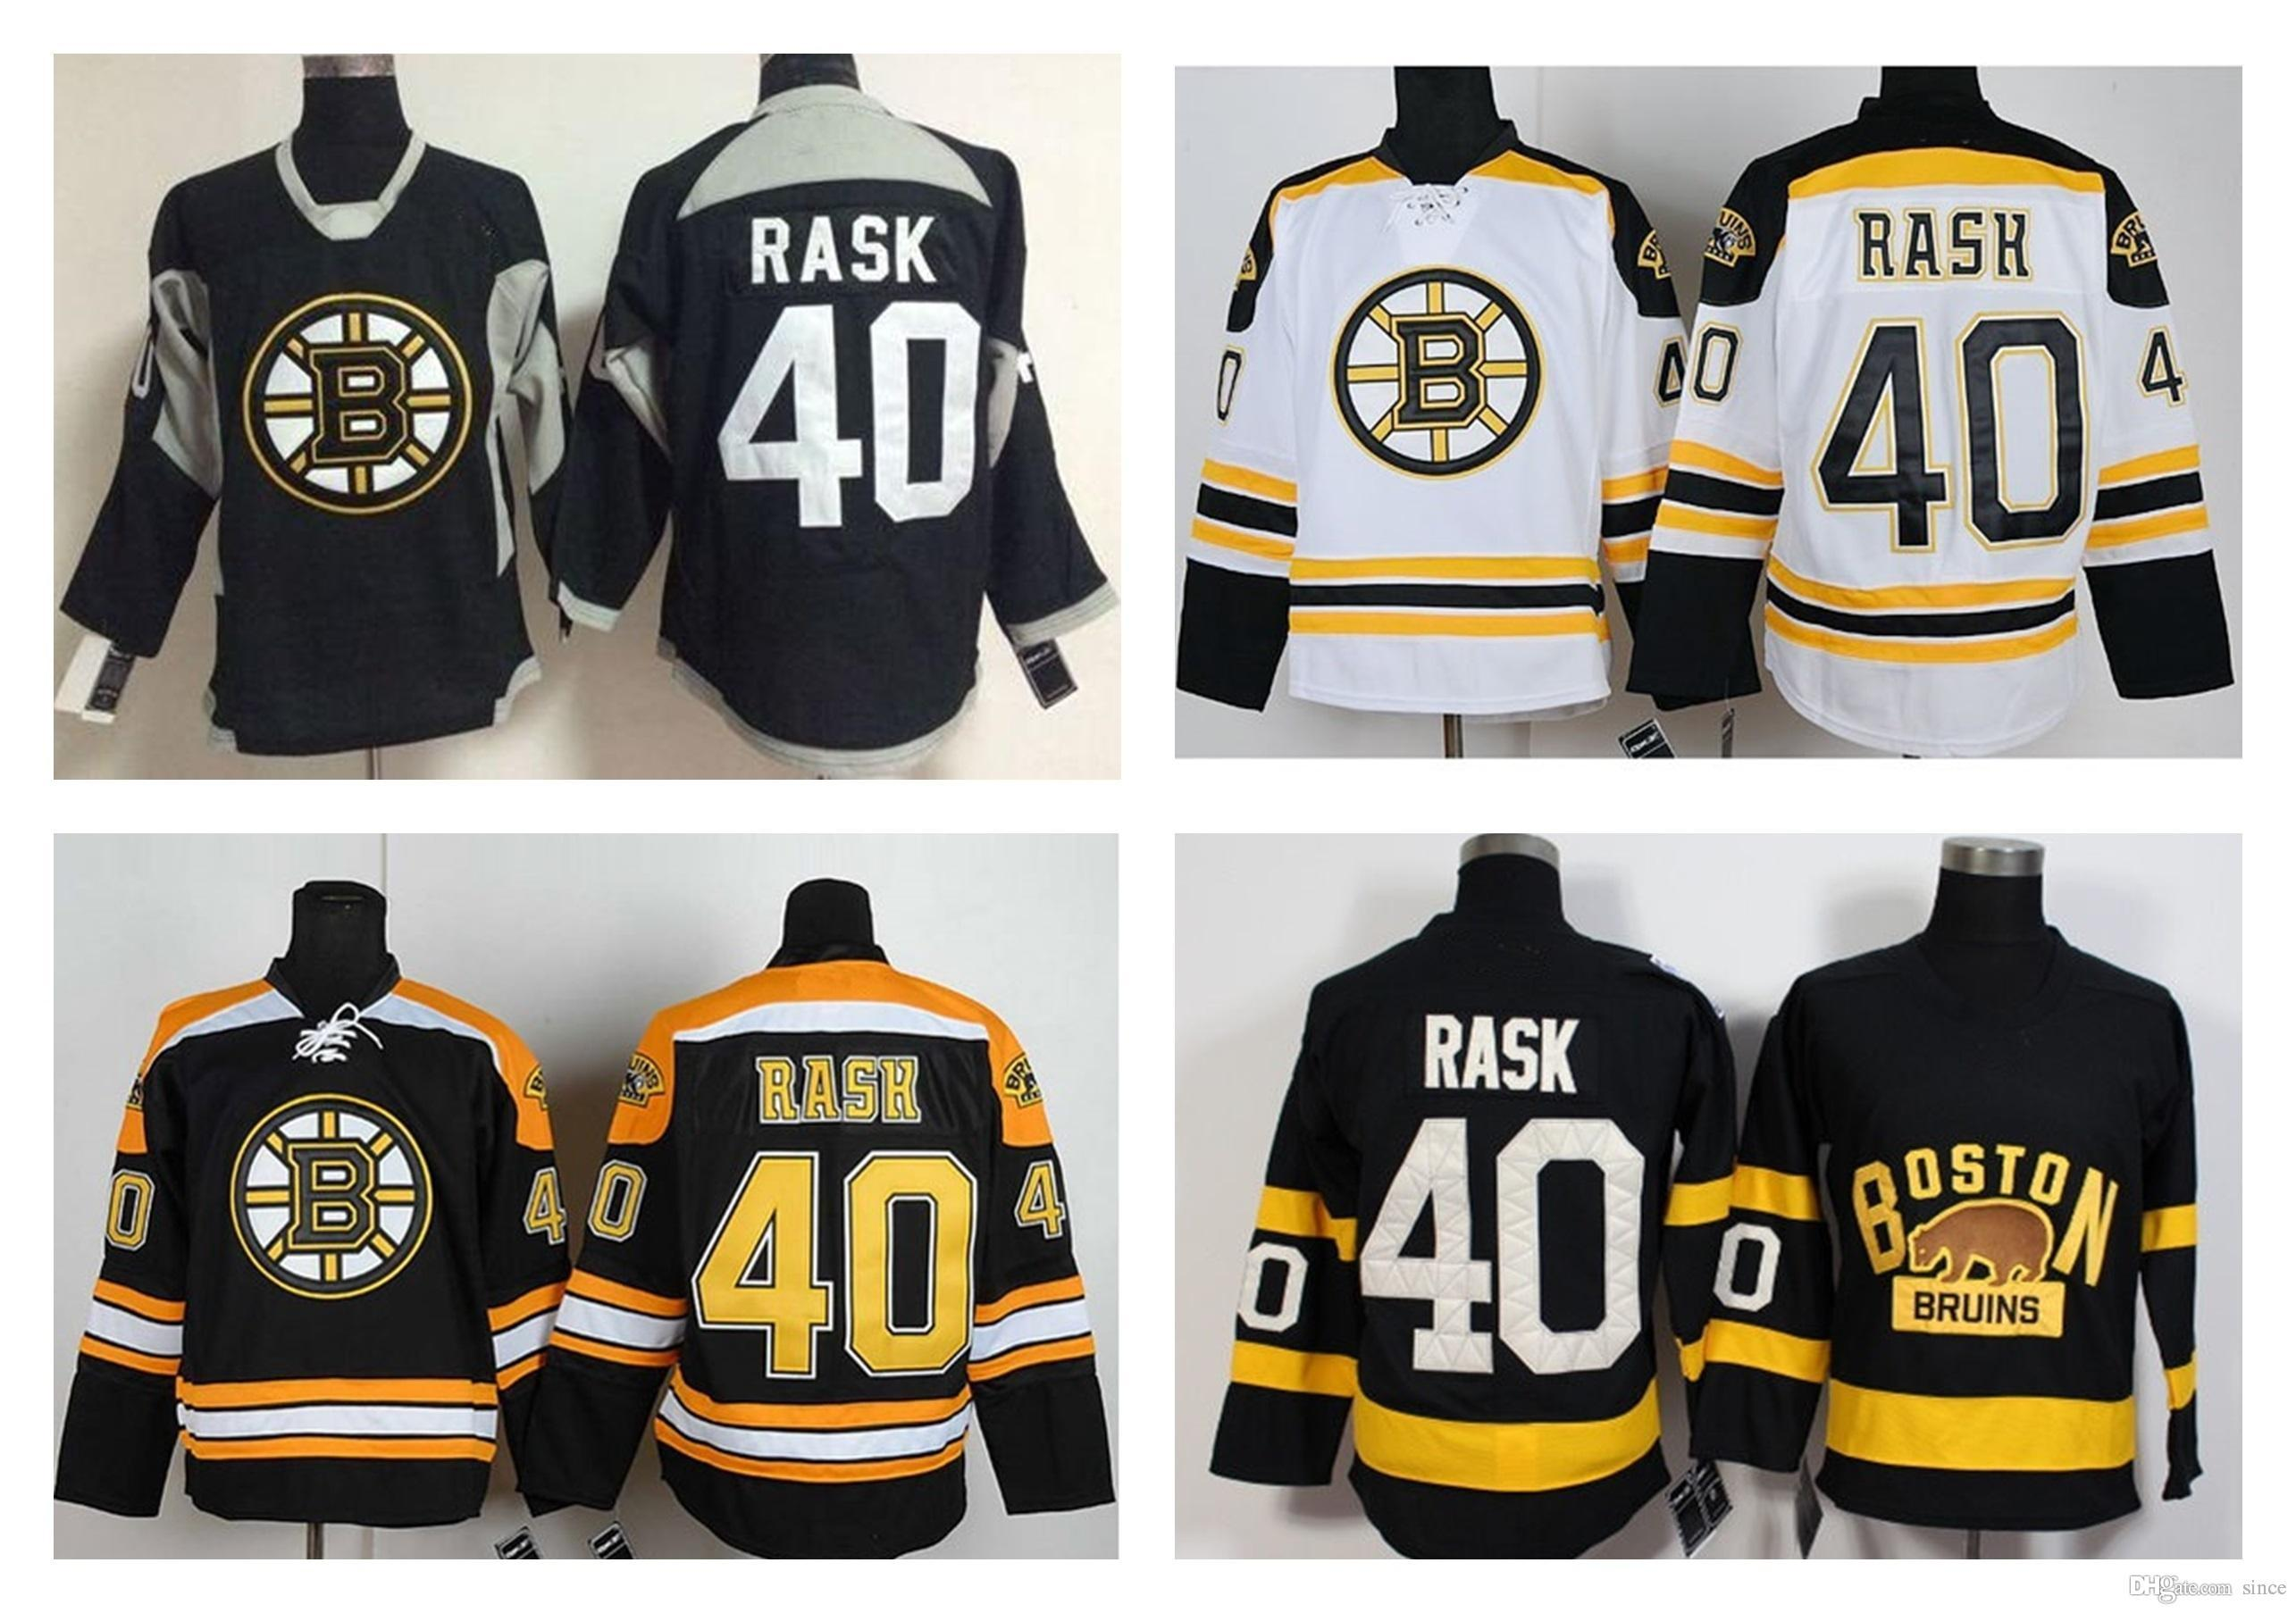 on sale 09147 c0b71 Mens 40 tuukka rask 2016 New cheap Boston Bruins jerseys authentic  swearsport T-shirt White Black Best quality embroidered Hockey Jerseys